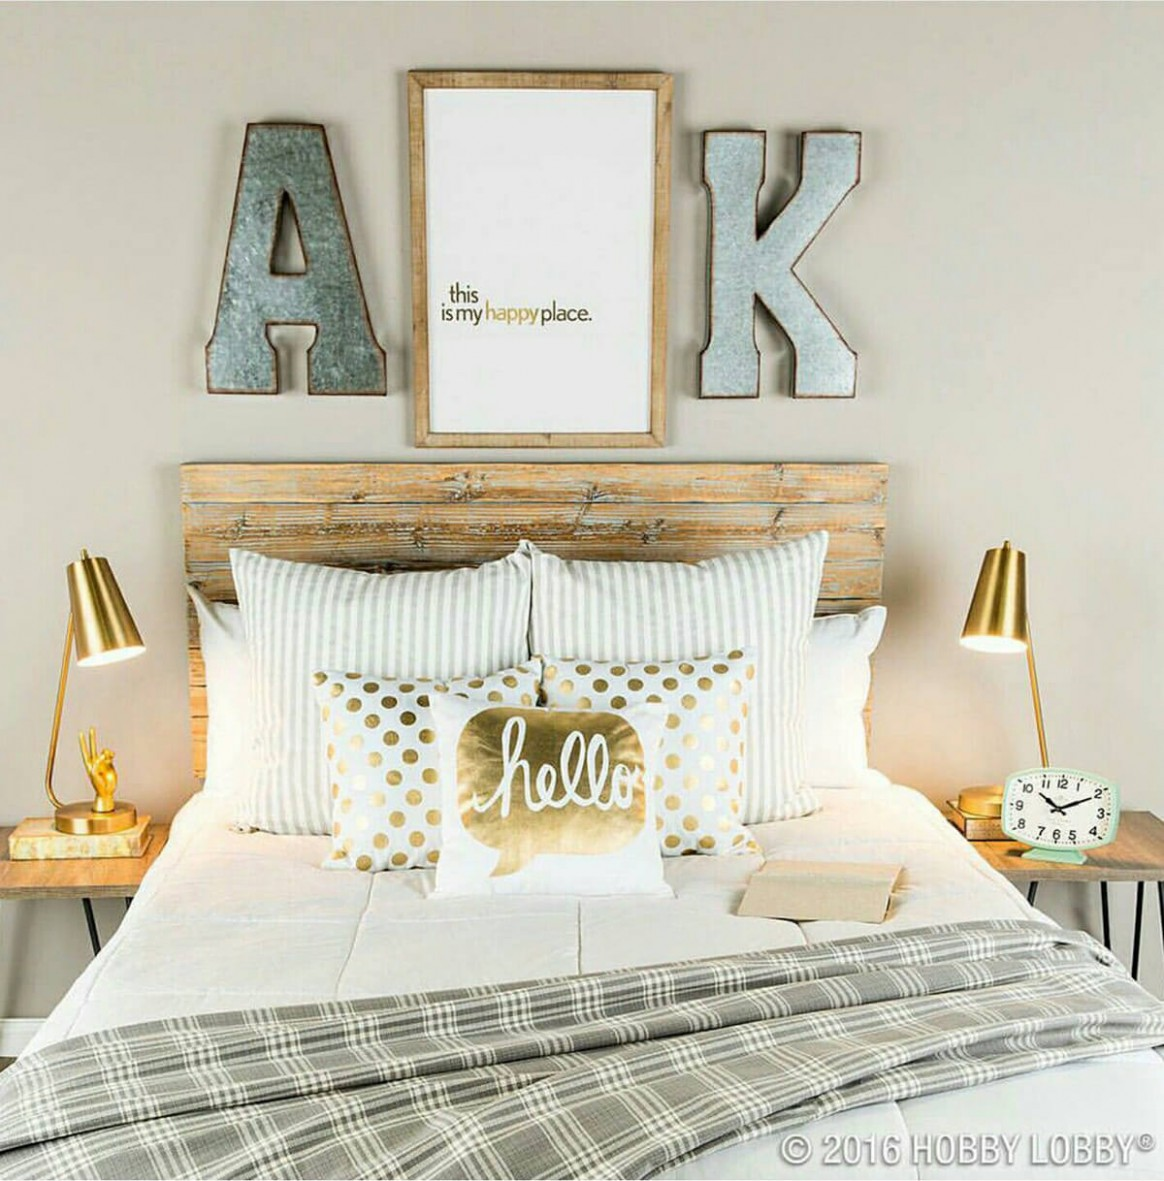 8+ Best Bedroom Wall Decor Ideas and Designs for 8 - Wall Decor Ideas In Bedroom